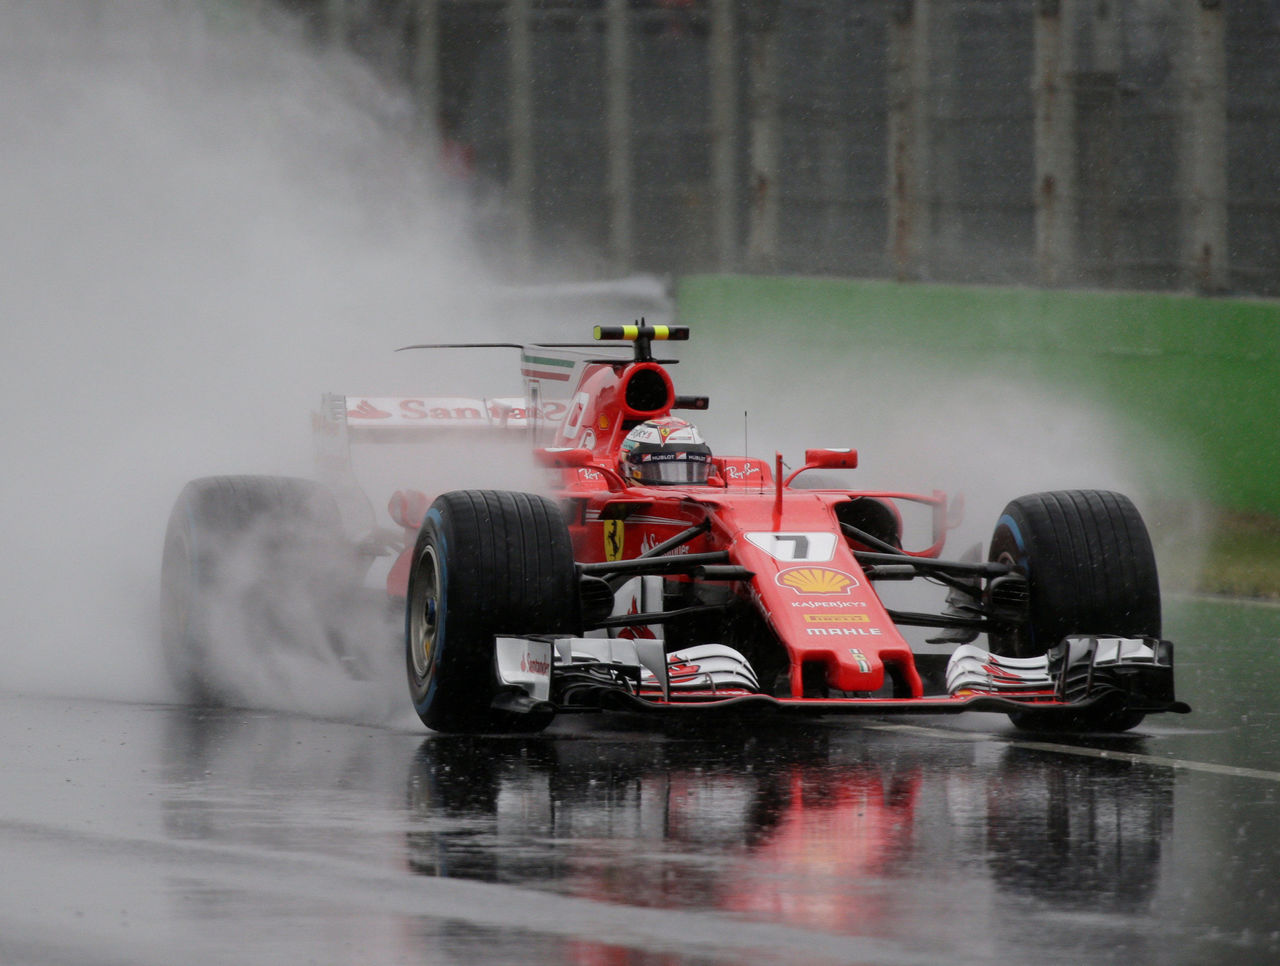 Cropped 2017 09 02t095611z 257825992 rc1145174df0 rtrmadp 3 motor f1 italy